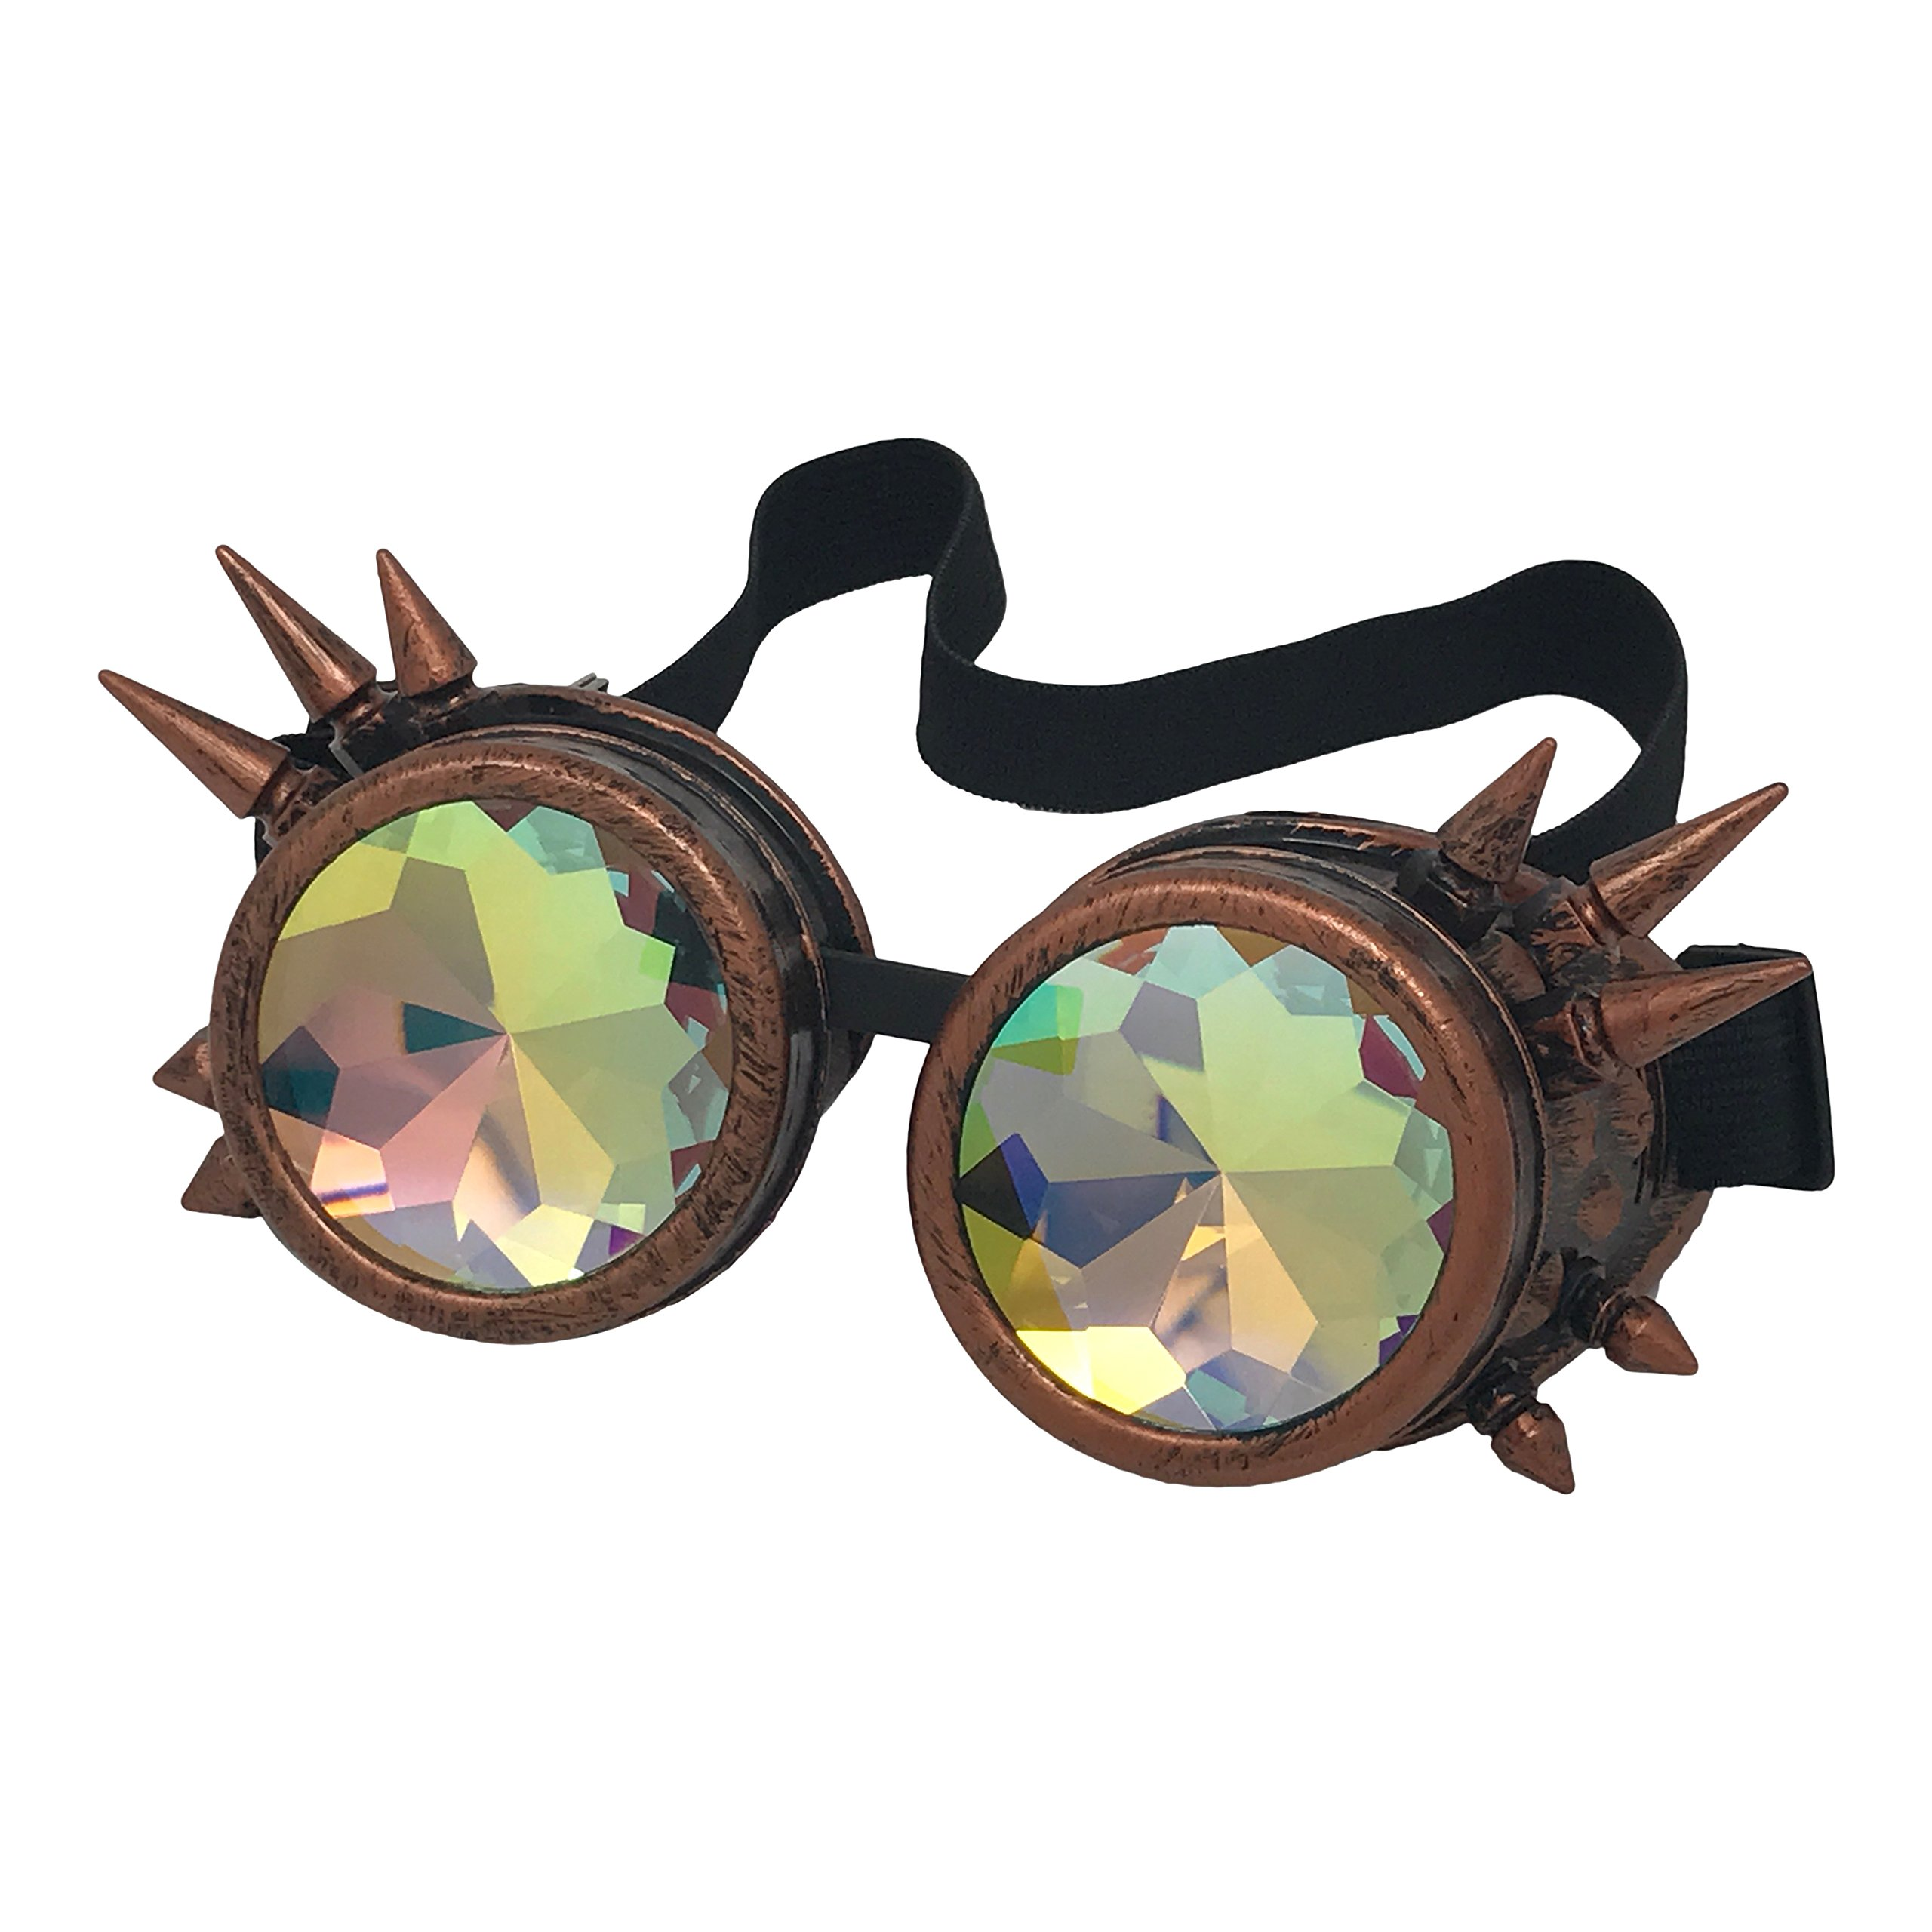 Kurios Cabinet Steampunk Goggles - Red Copper Spiked & Kaleidoscope